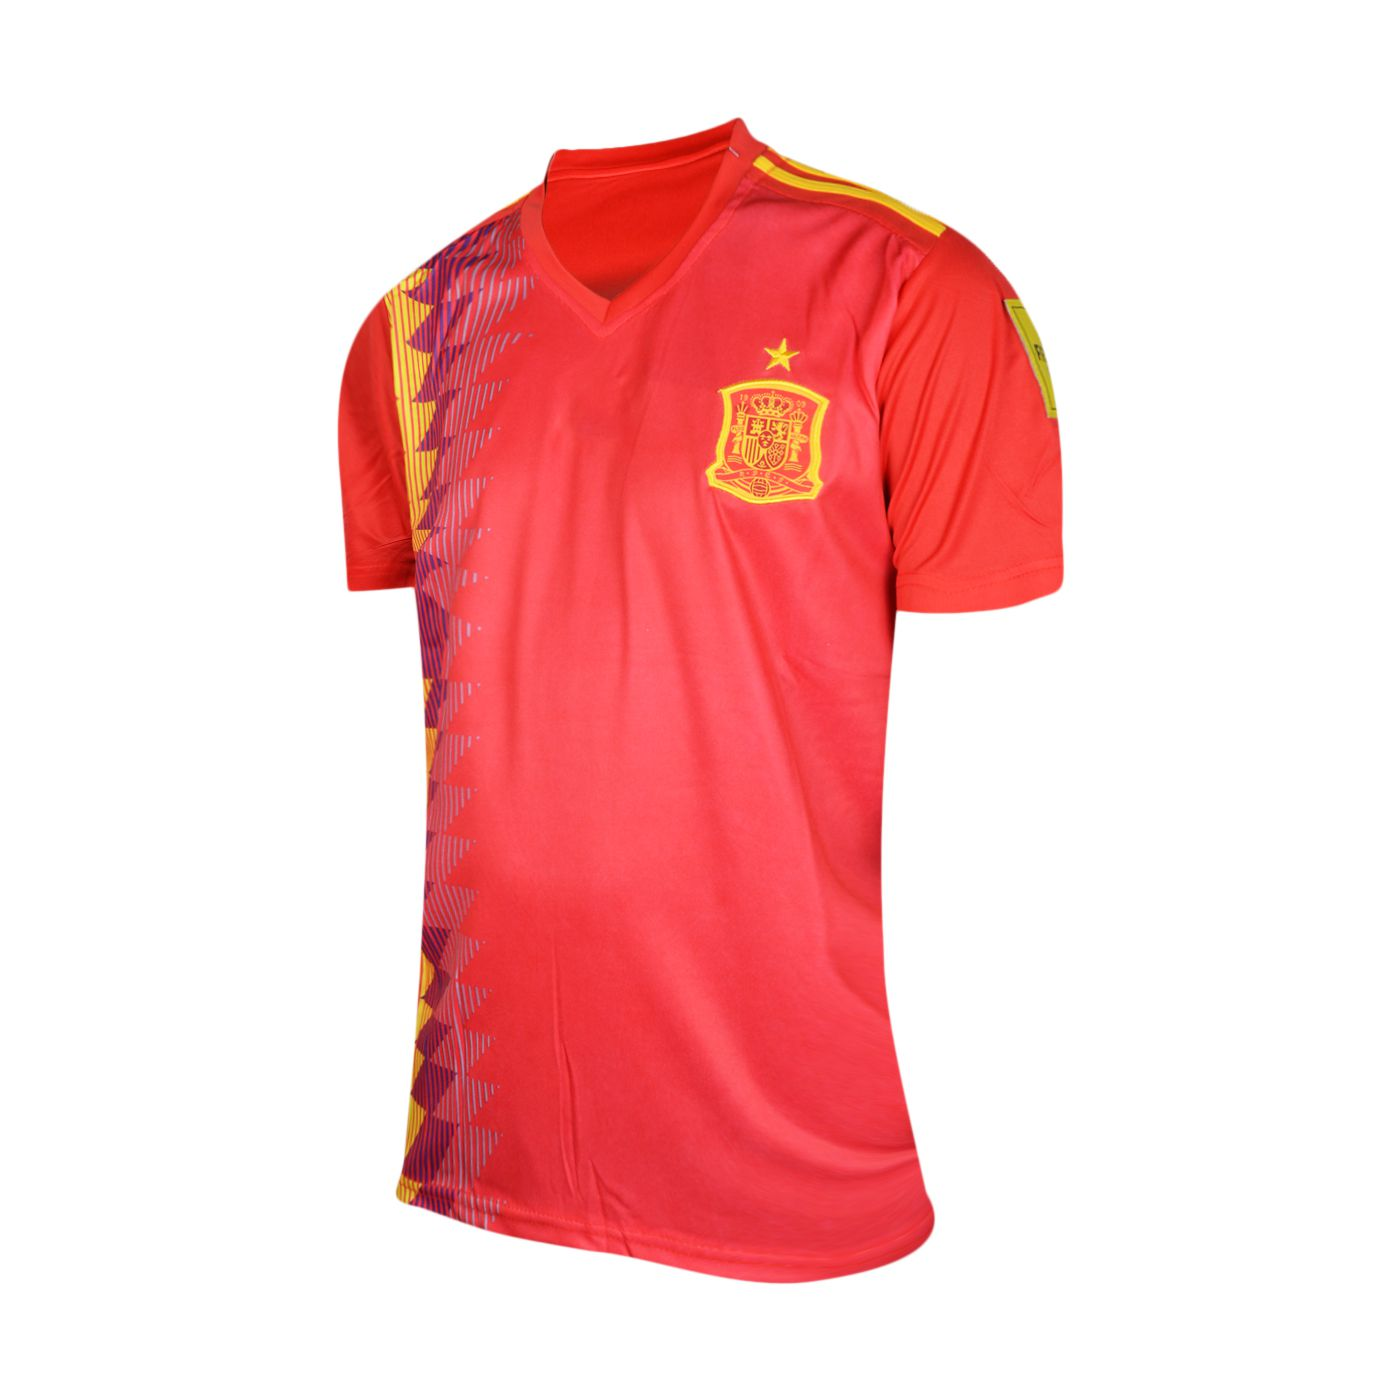 huge selection of fc257 affe5 FIFA World Cup Spain National Team Home Red Football Jersey